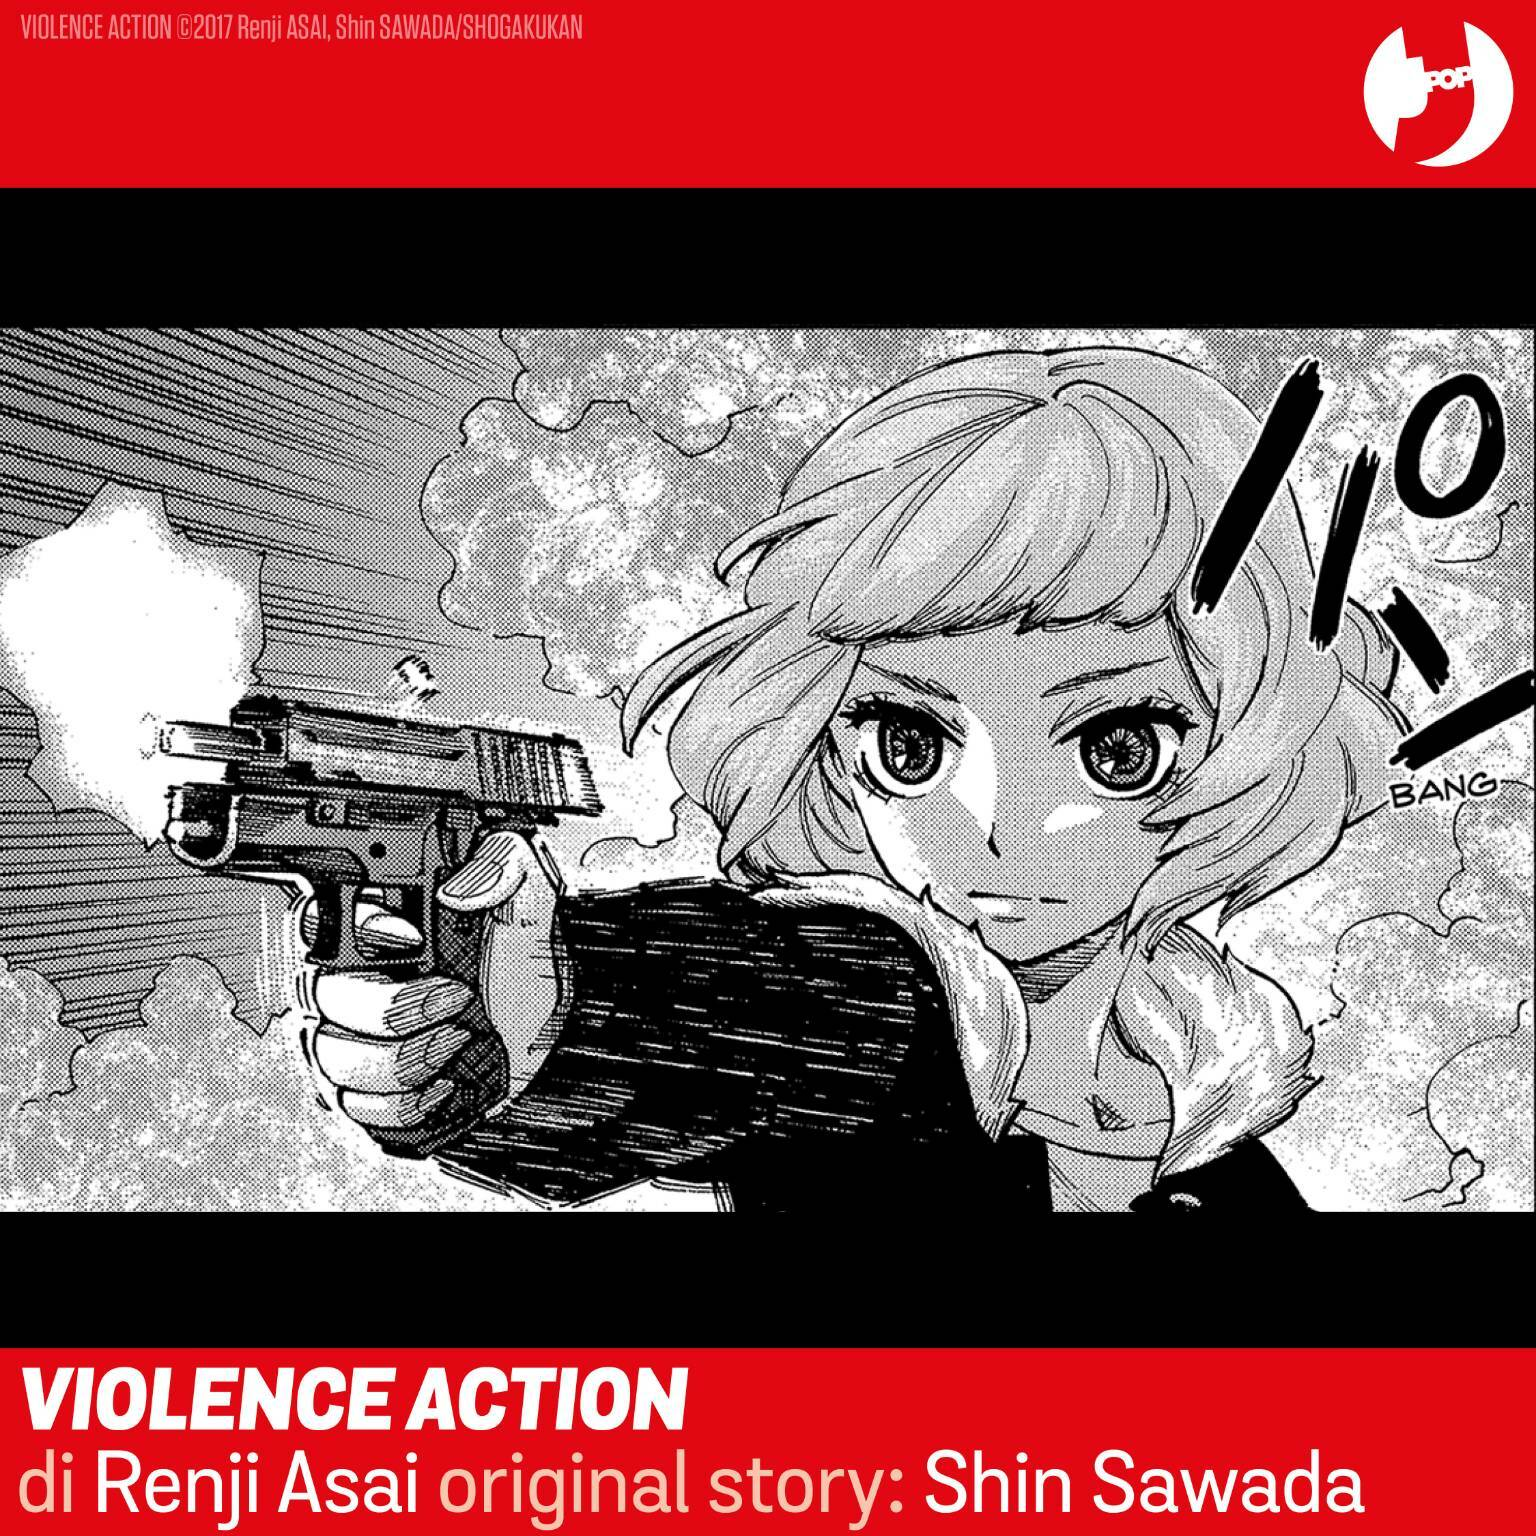 Violence Action